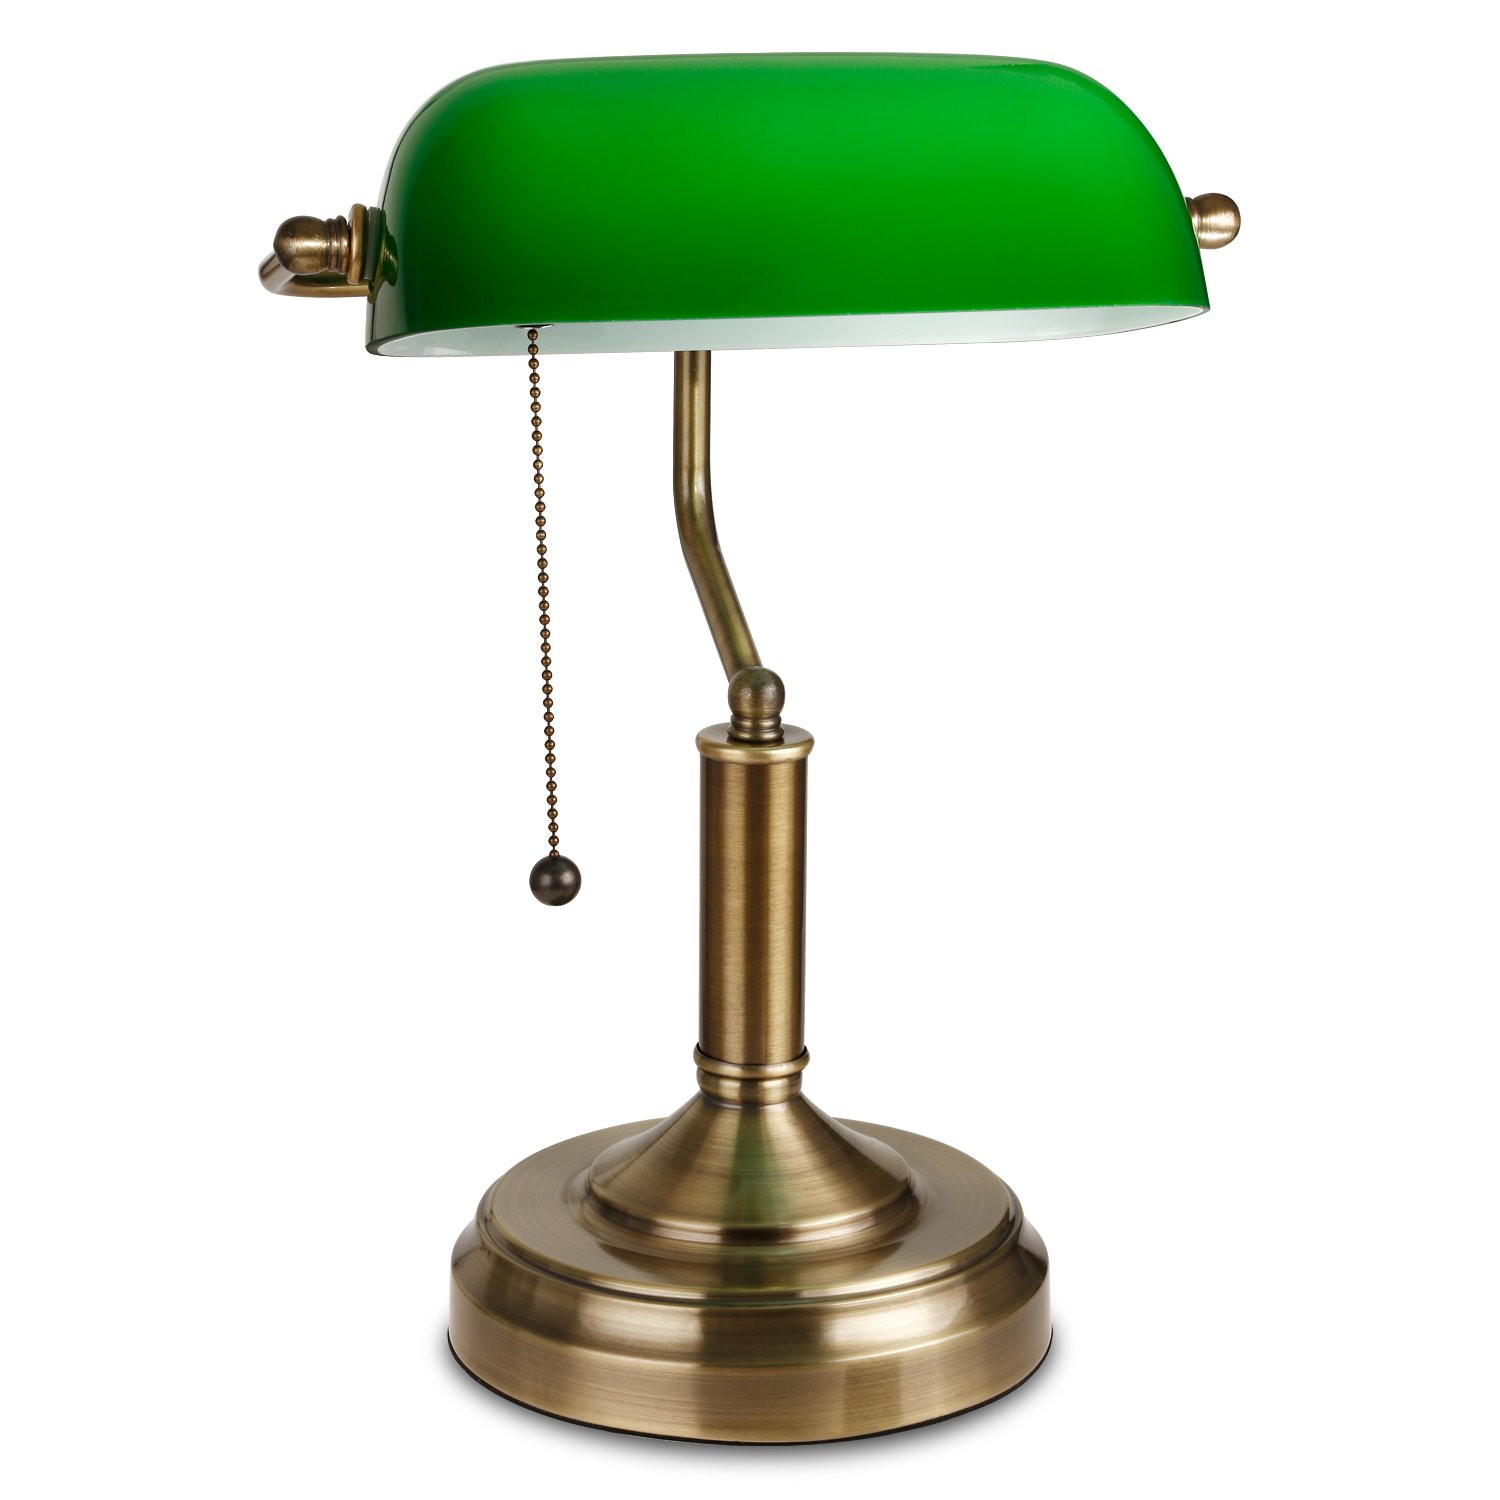 Amazon torchstar traditional bankers lamp antique style amazon torchstar traditional bankers lamp antique style emerald green glass desk light fixture satin brass finish metal beaded pull cord switch aloadofball Choice Image